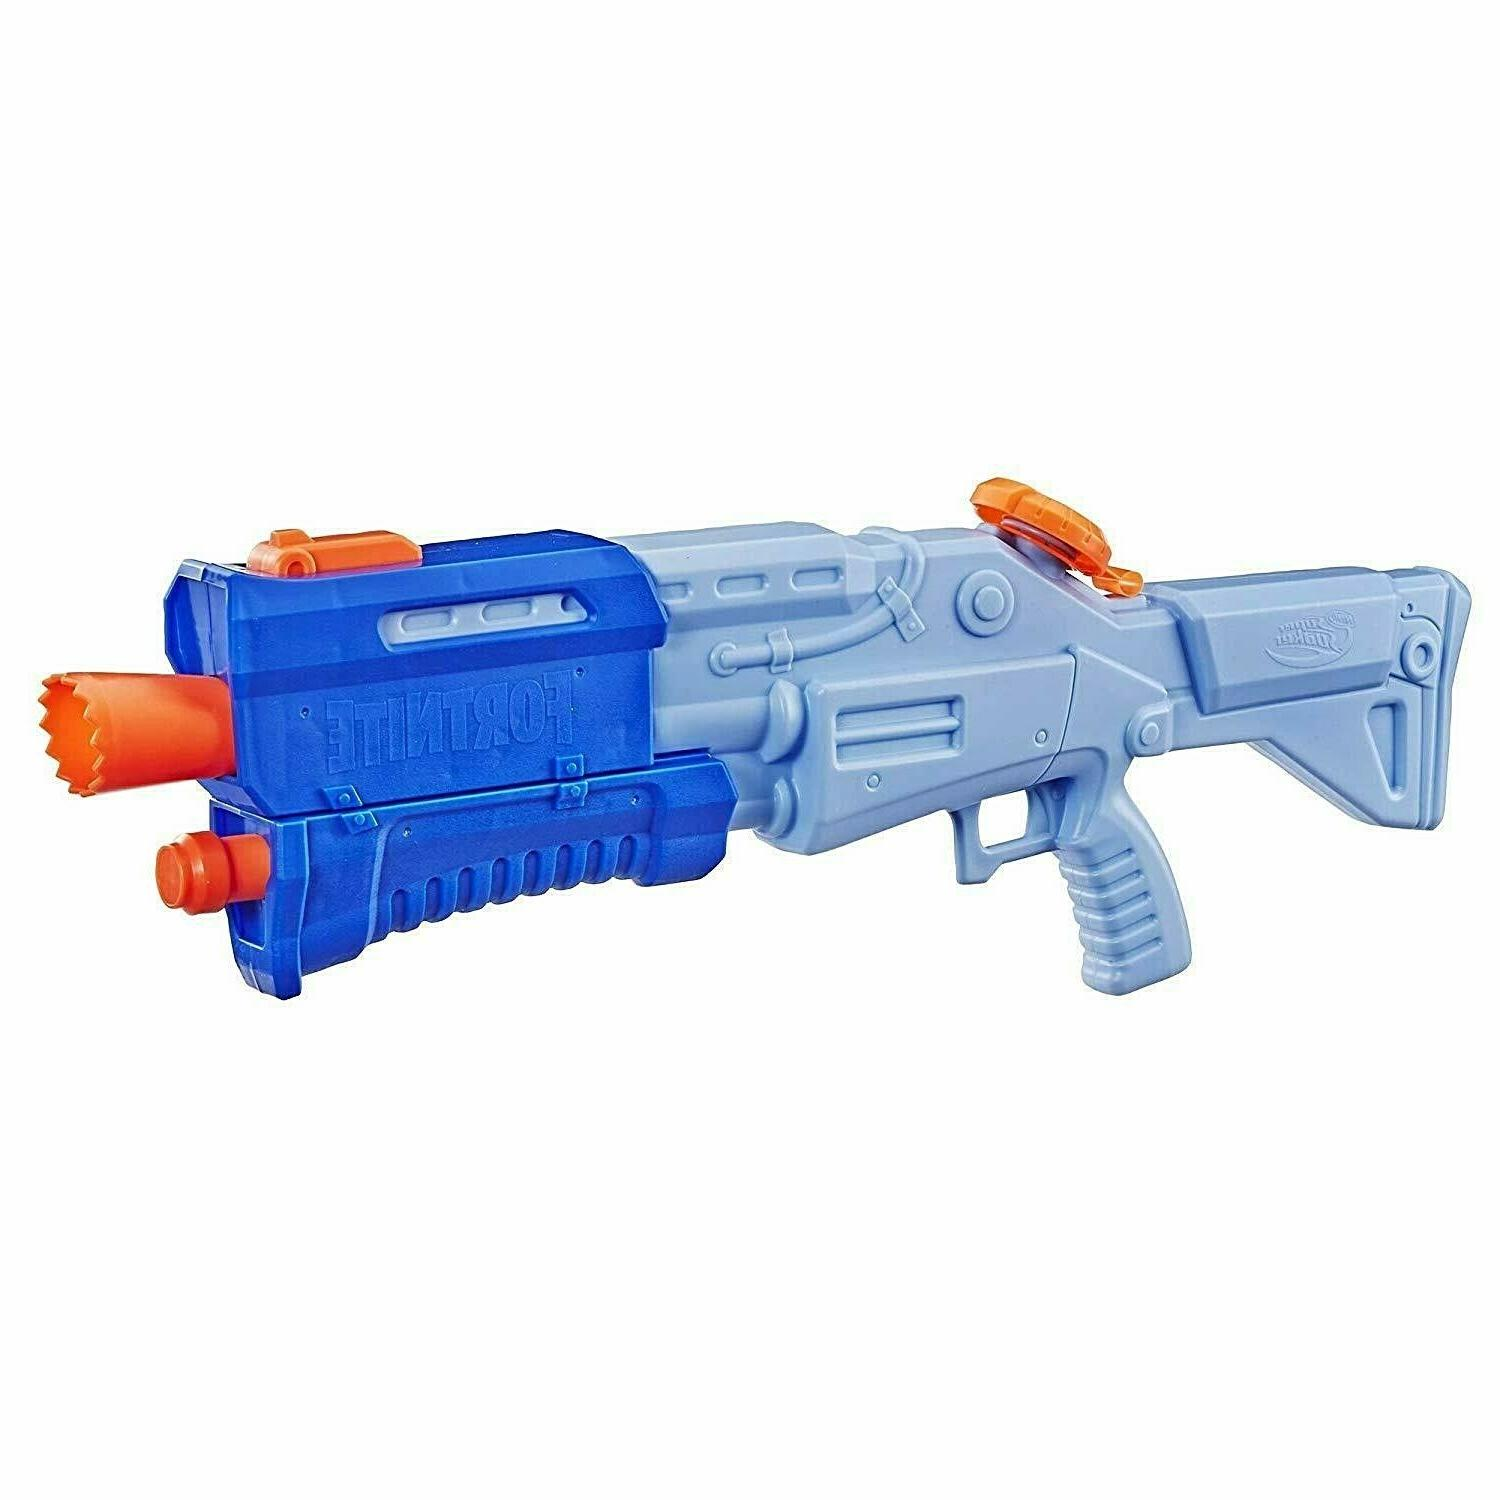 Nerf Soaker Water Toy For